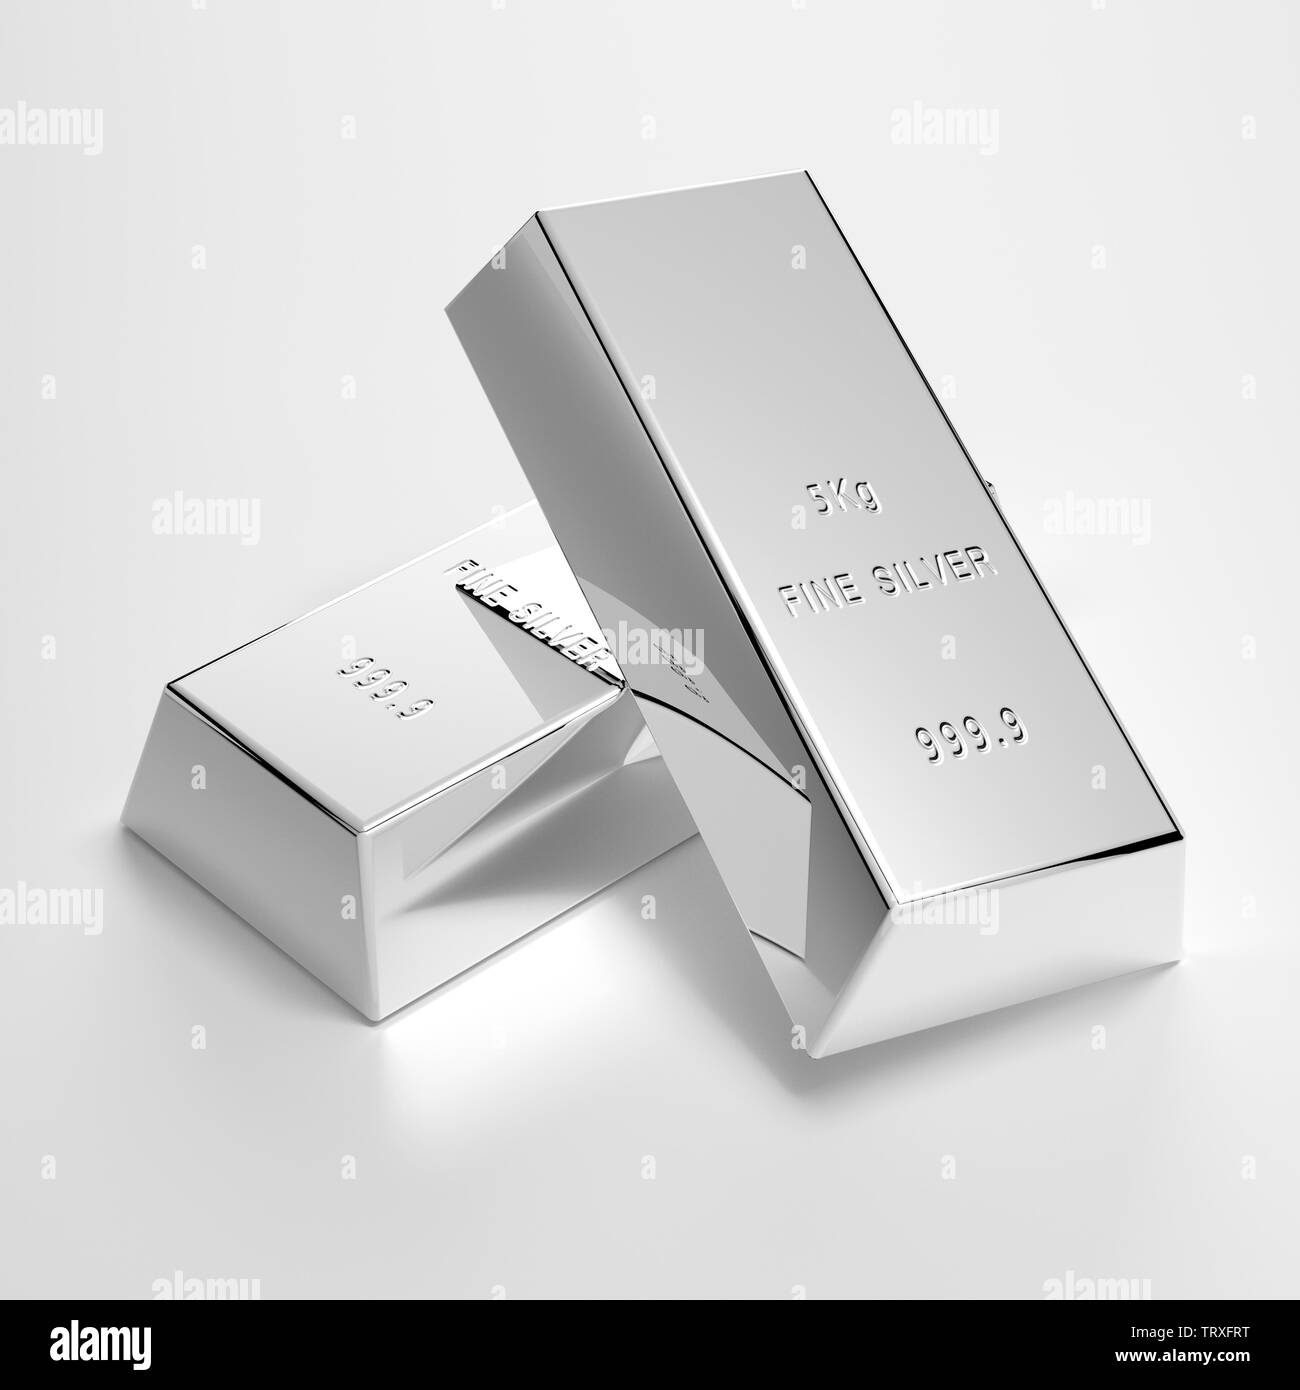 polishes silver bars on table - Illustration - Stock Image